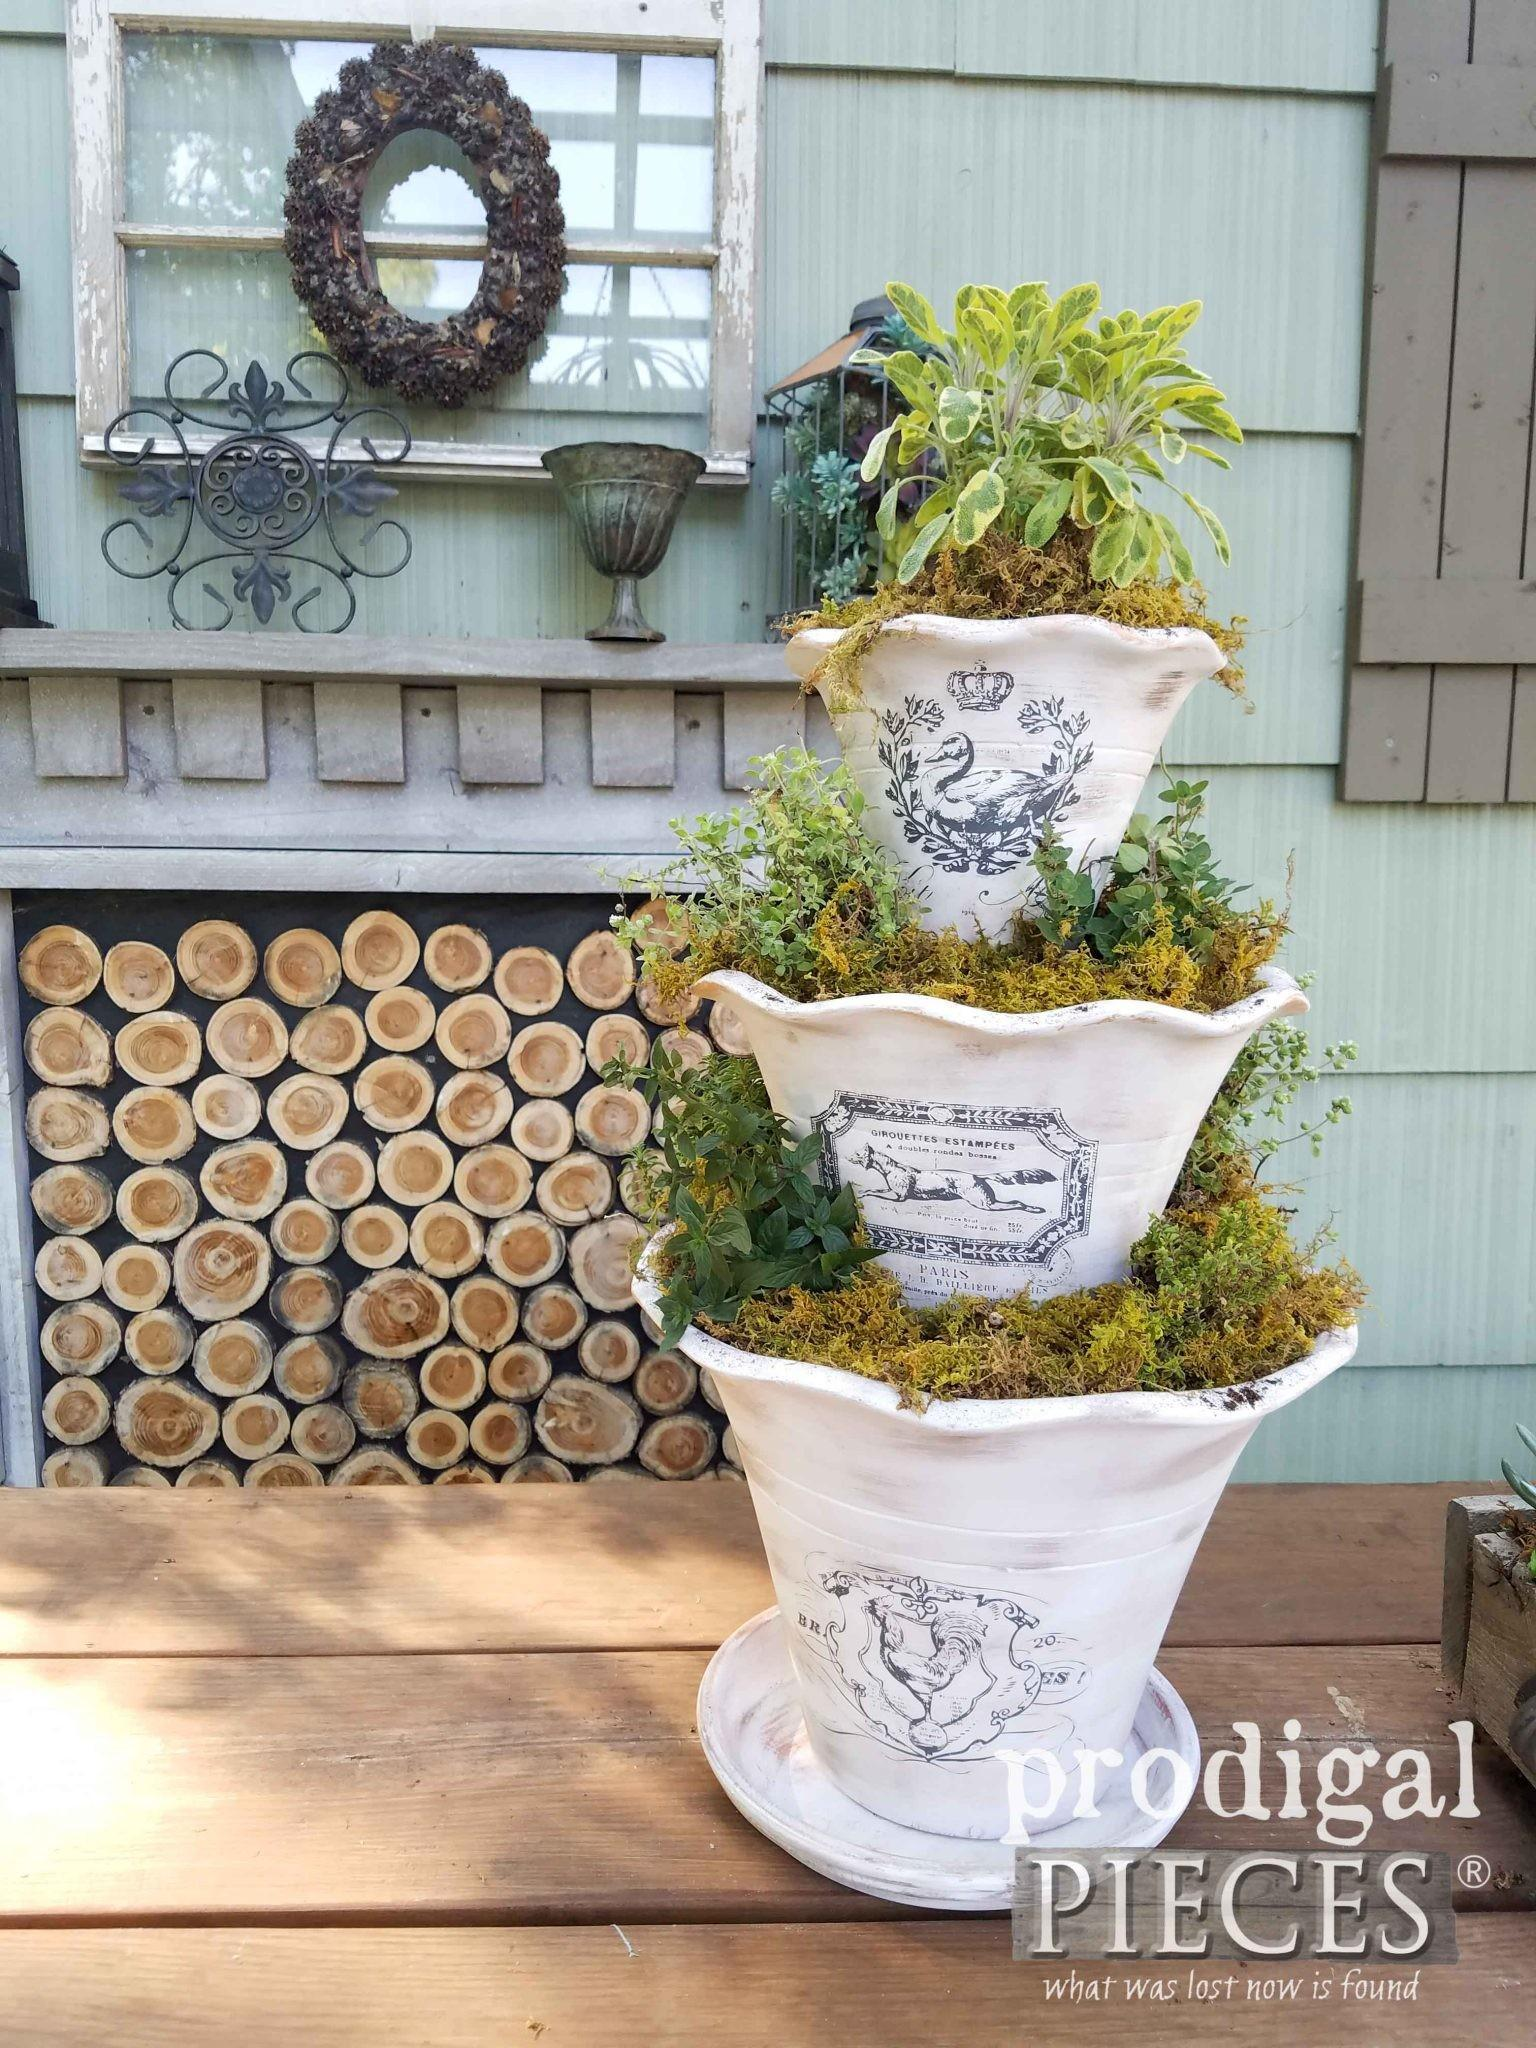 Diy Tiered Planter French Graphics Prodigal Pieces